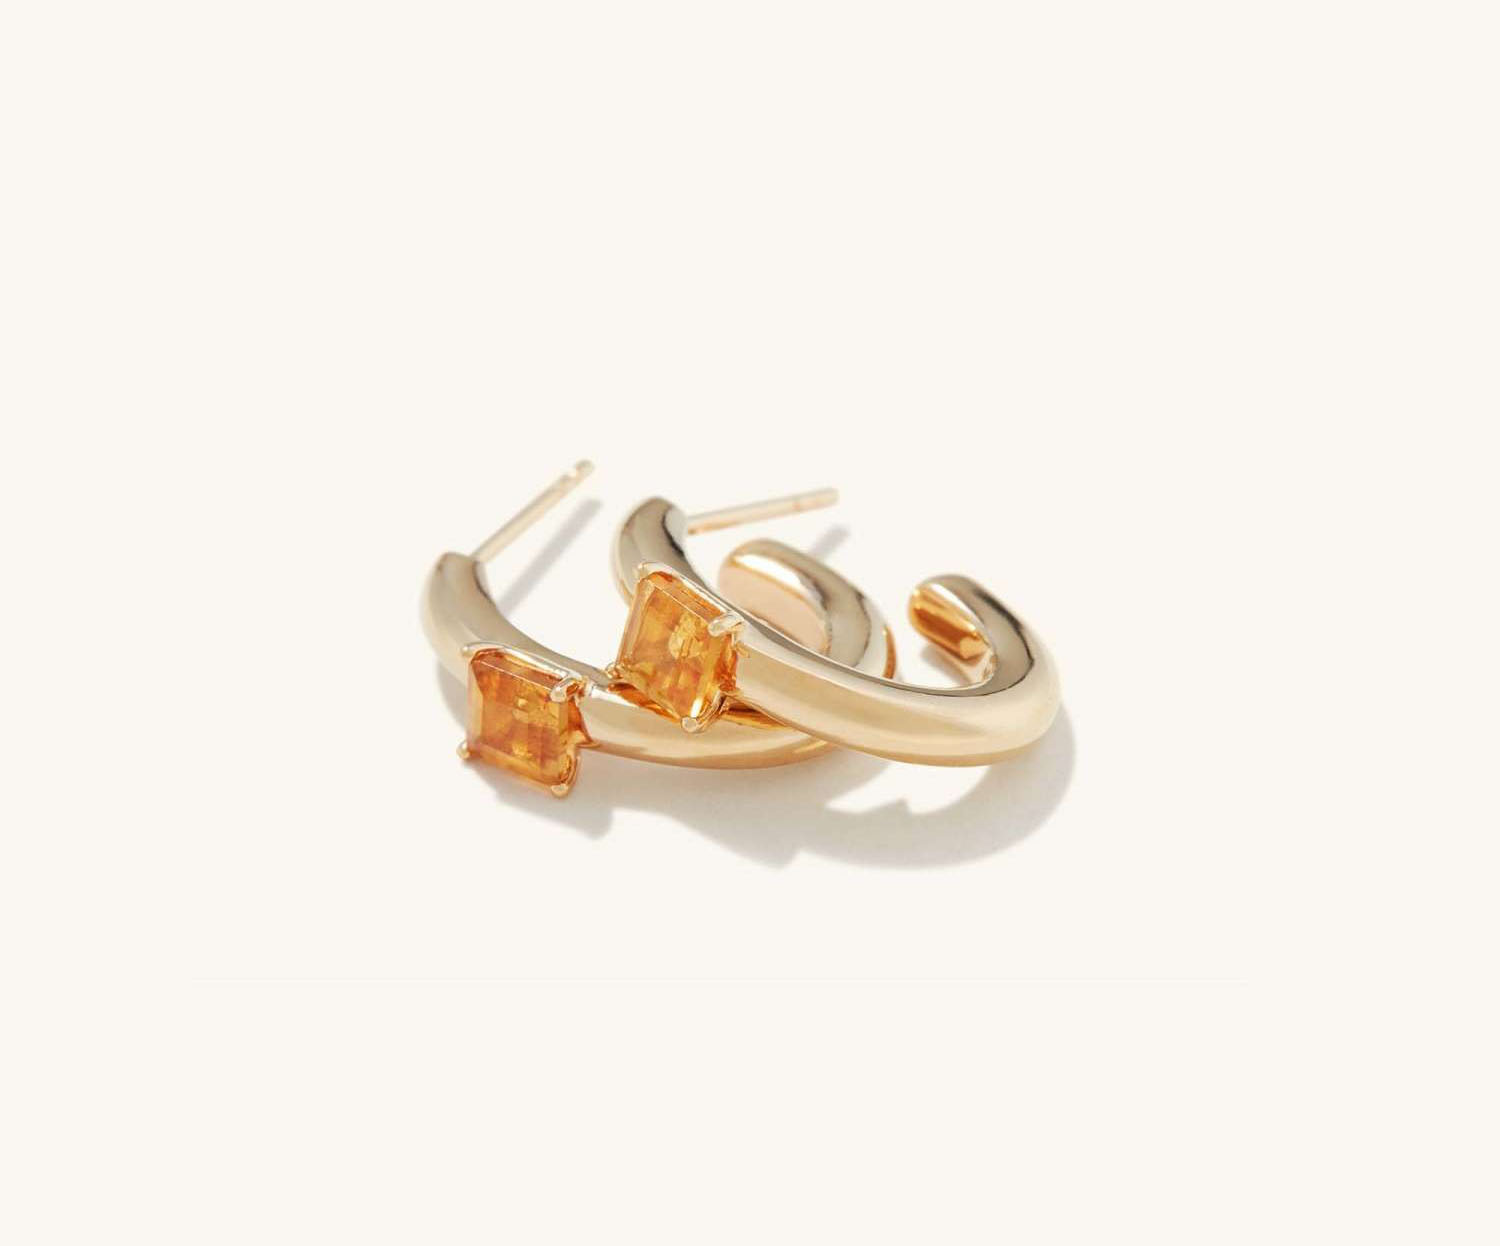 hoop shaped citrine stone accented gold wedding earrings